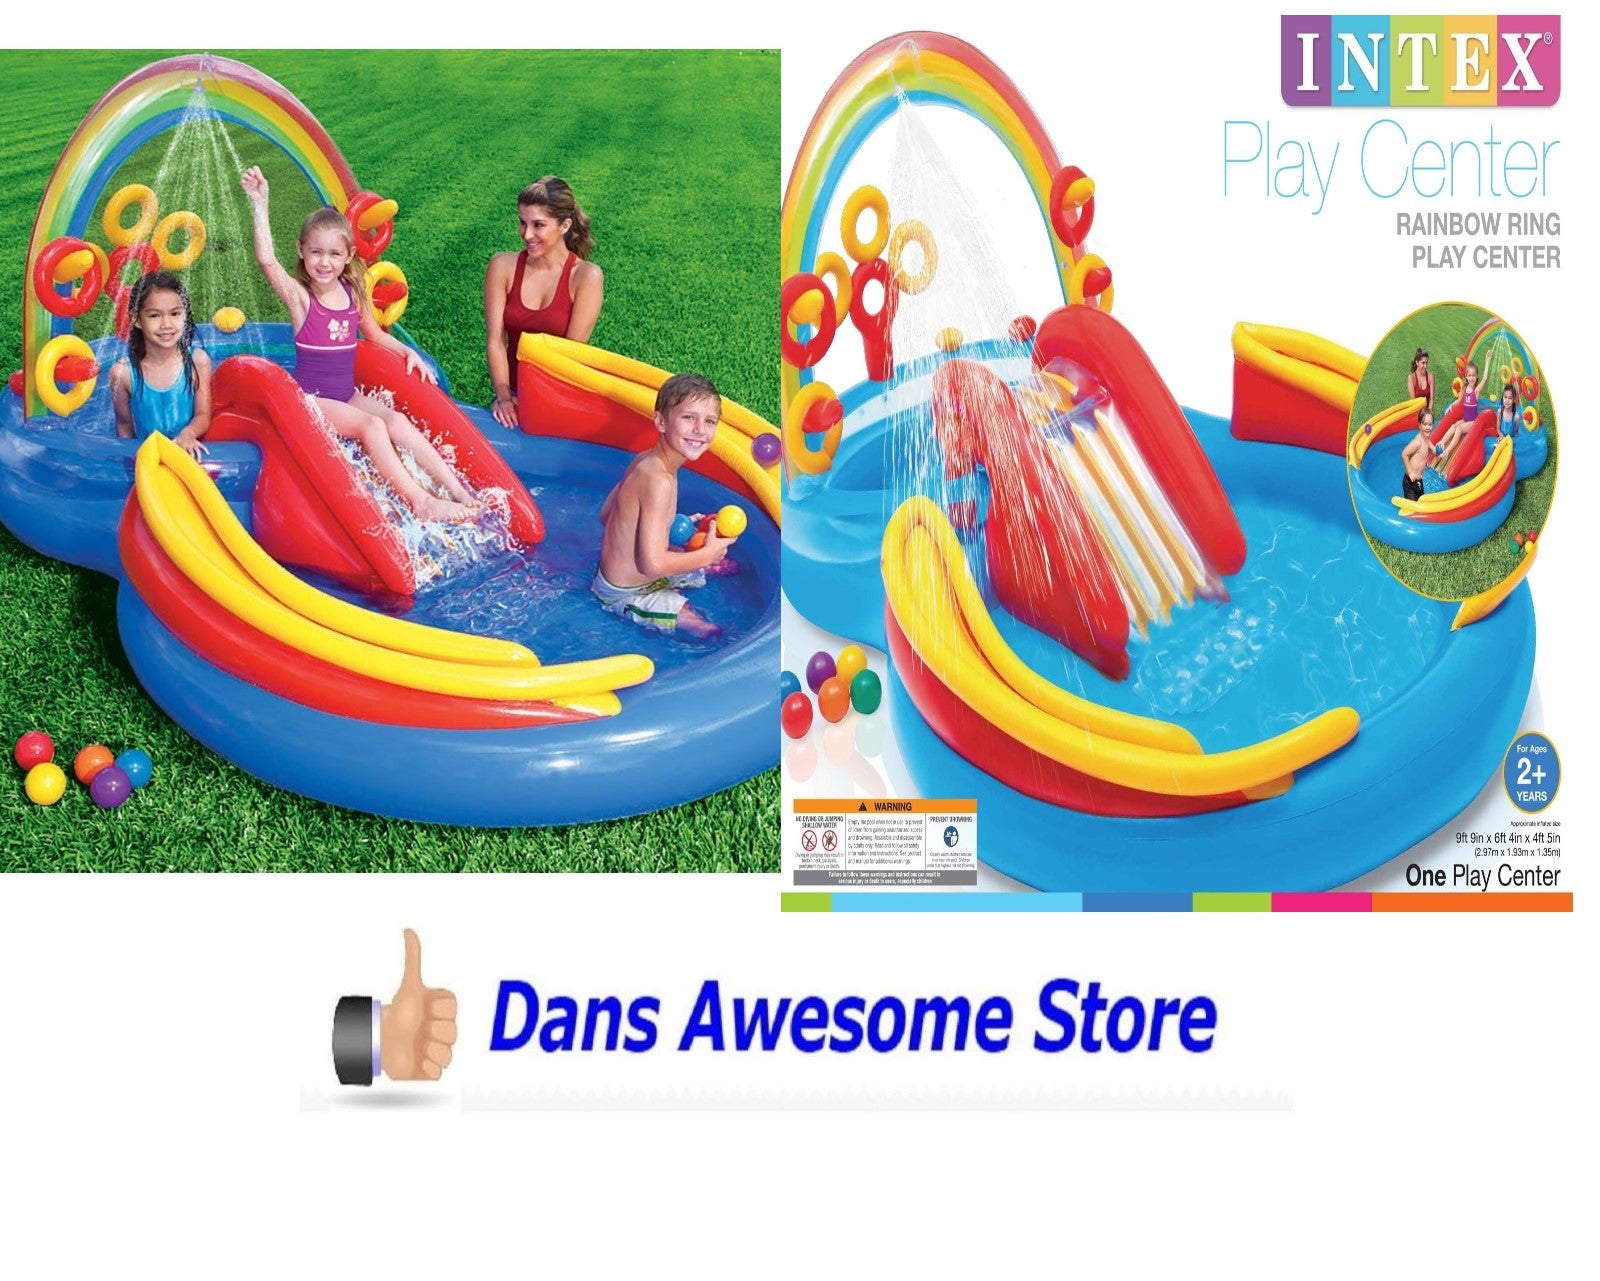 Intex Inflatable Kids Pool Rainbow Ring Water Play Center Swimming Pool - Dans Awesome Store